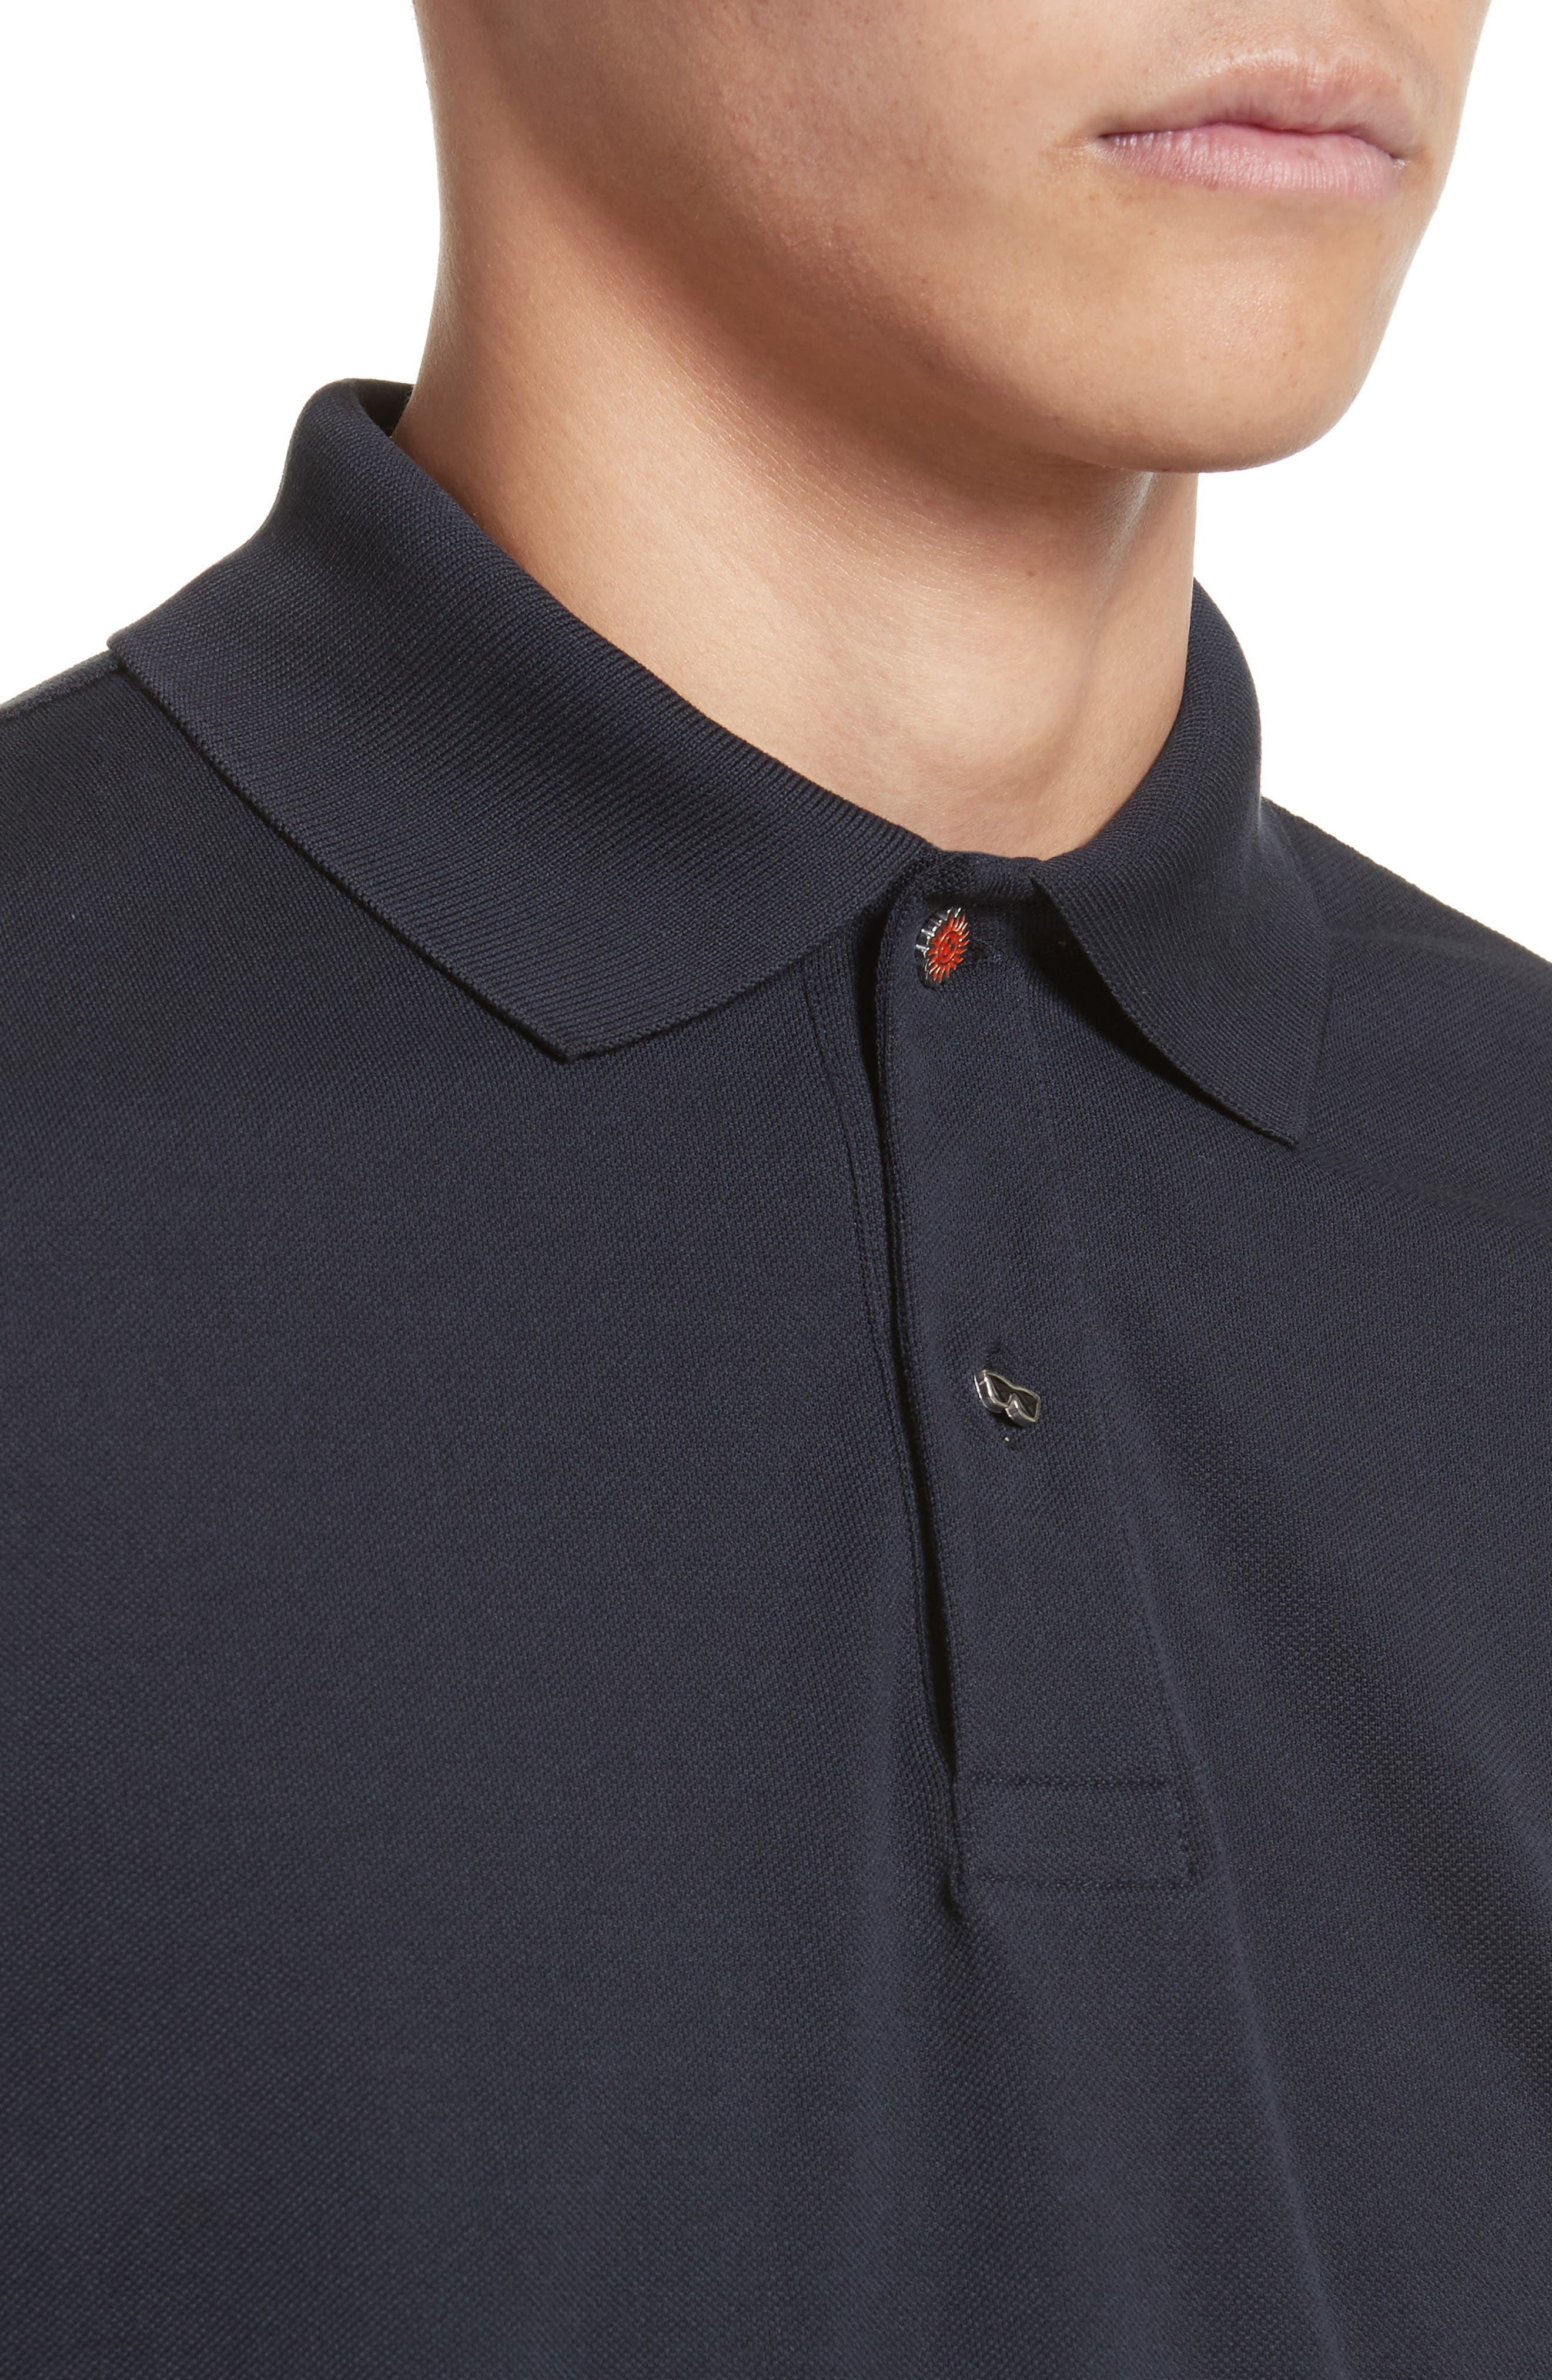 Piqué Polo with Character Buttons,                             Alternate thumbnail 4, color,                             Navy